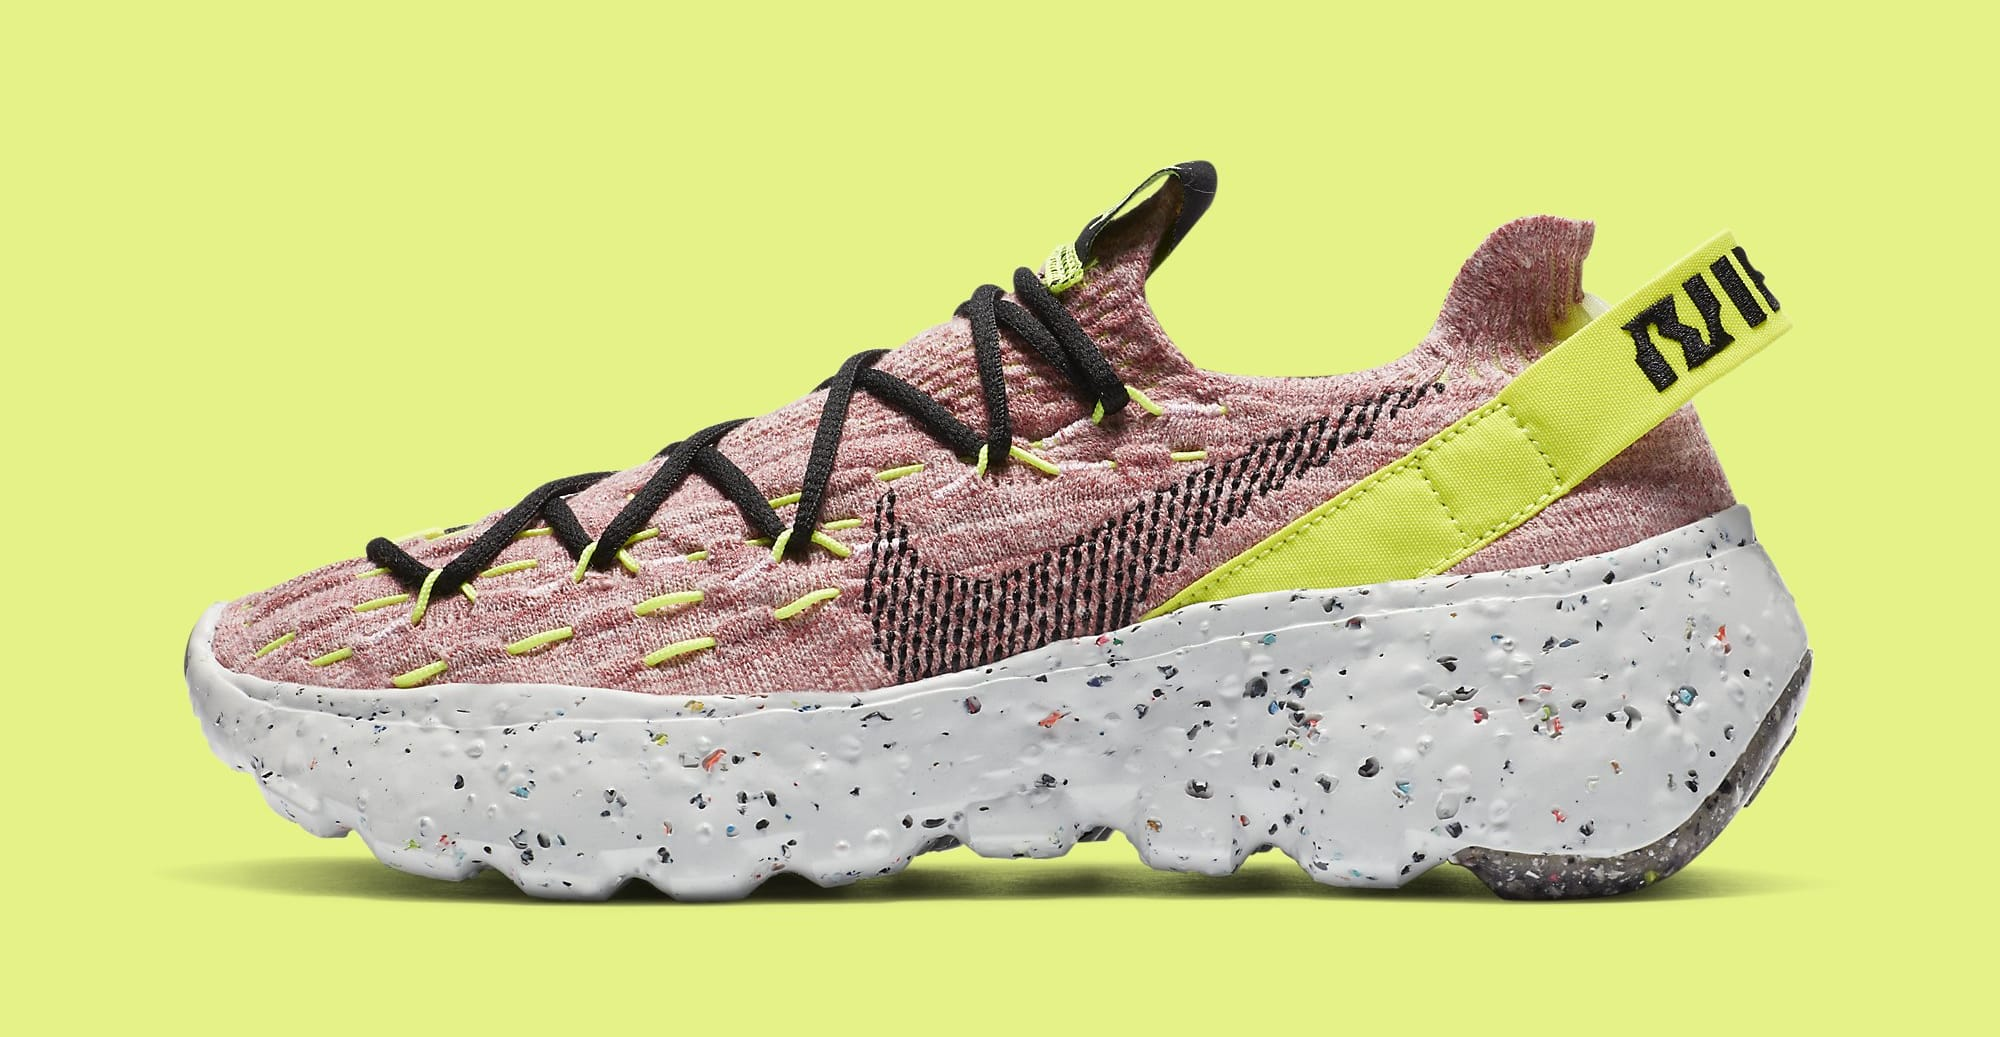 Nike Space Hippie 04 Women's 'Lemon Venom' CD3476-700 Lateral